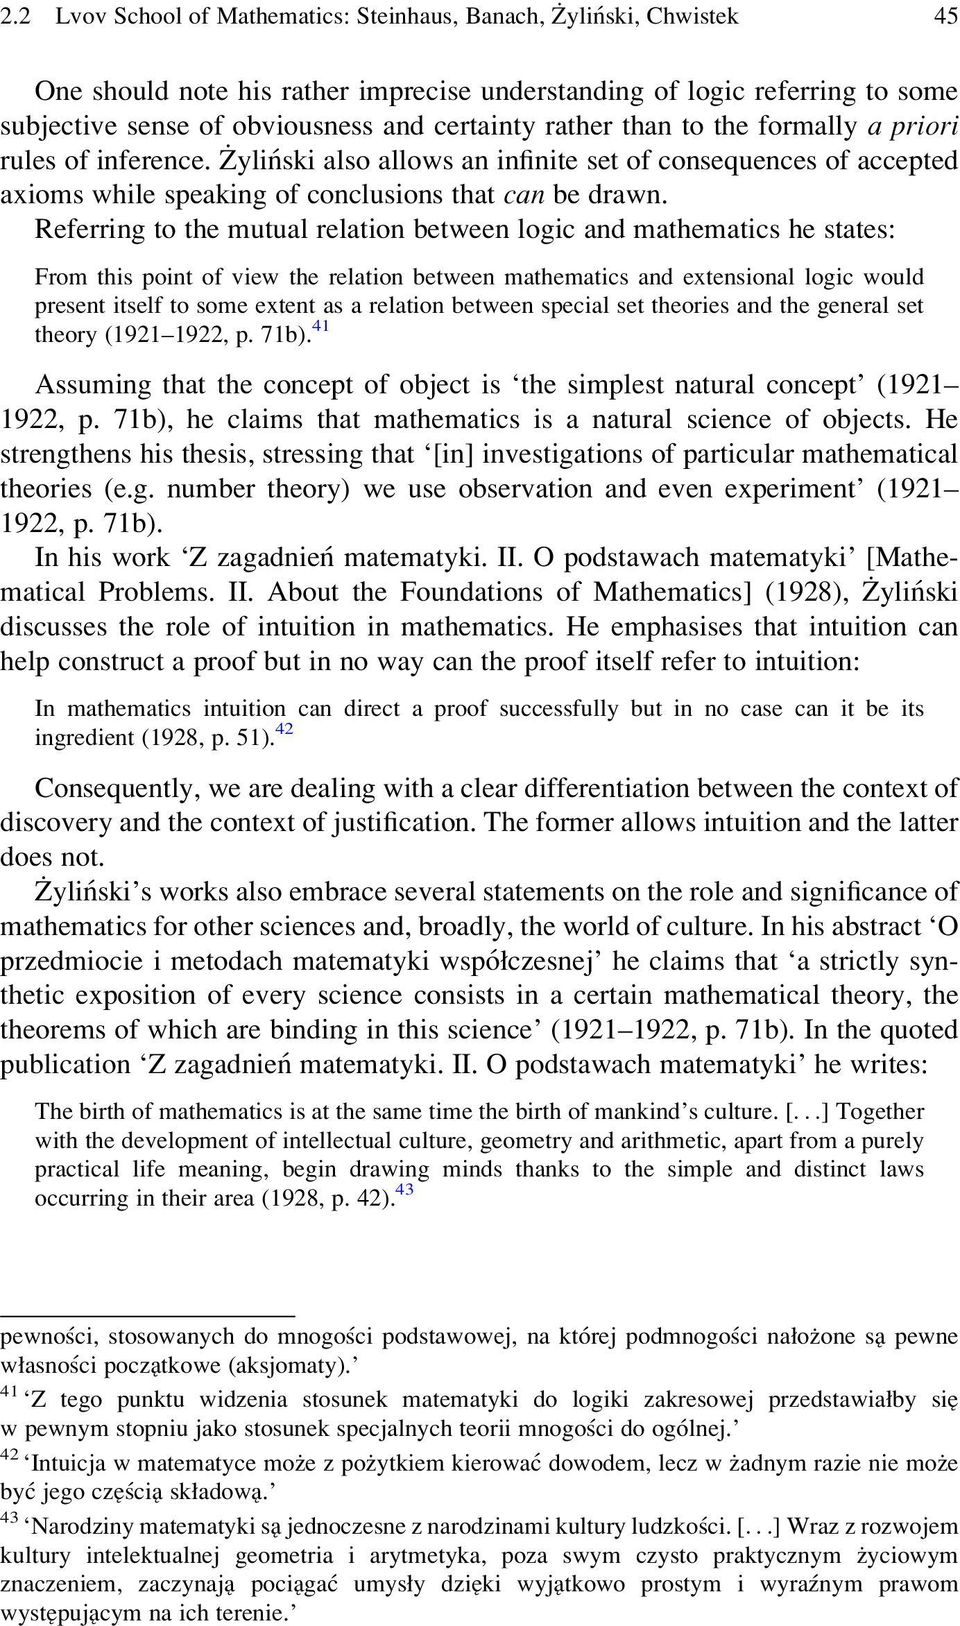 Referring to the mutual relation between logic and mathematics he states: From this point of view the relation between mathematics and extensional logic would present itself to some extent as a